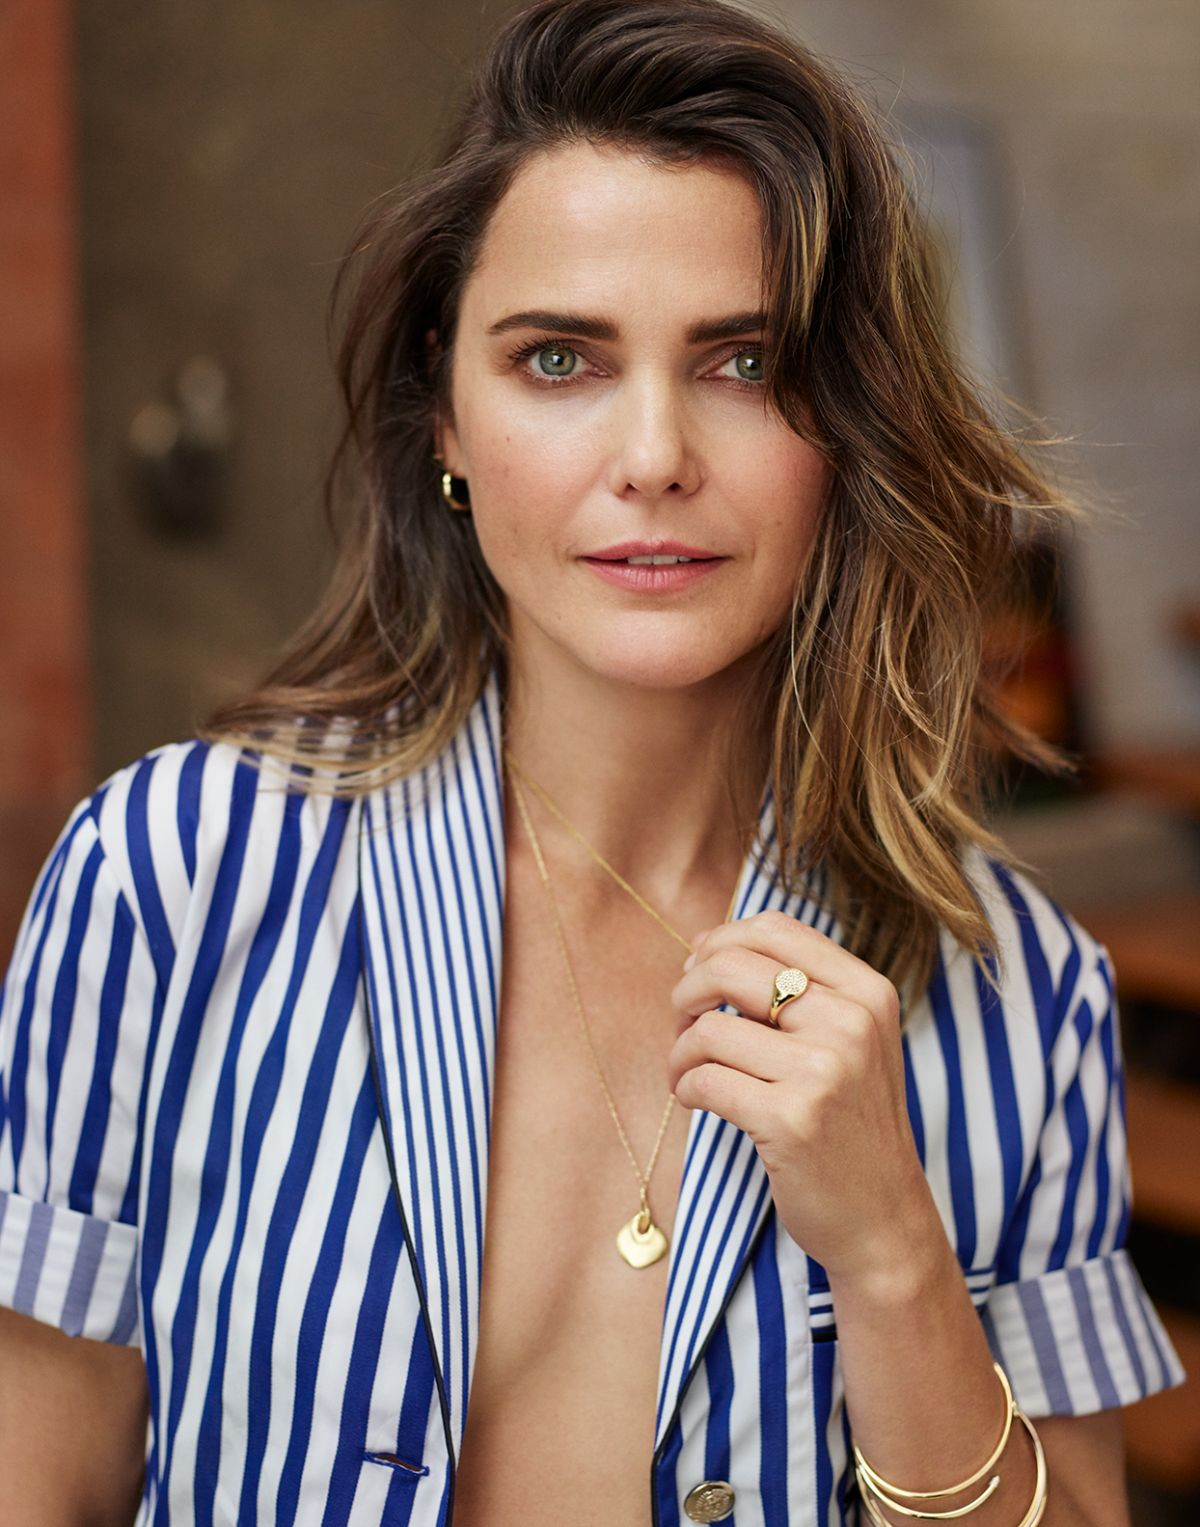 KERI RUSSELL at FX Networks and Vanity Fair Primetime Emmy